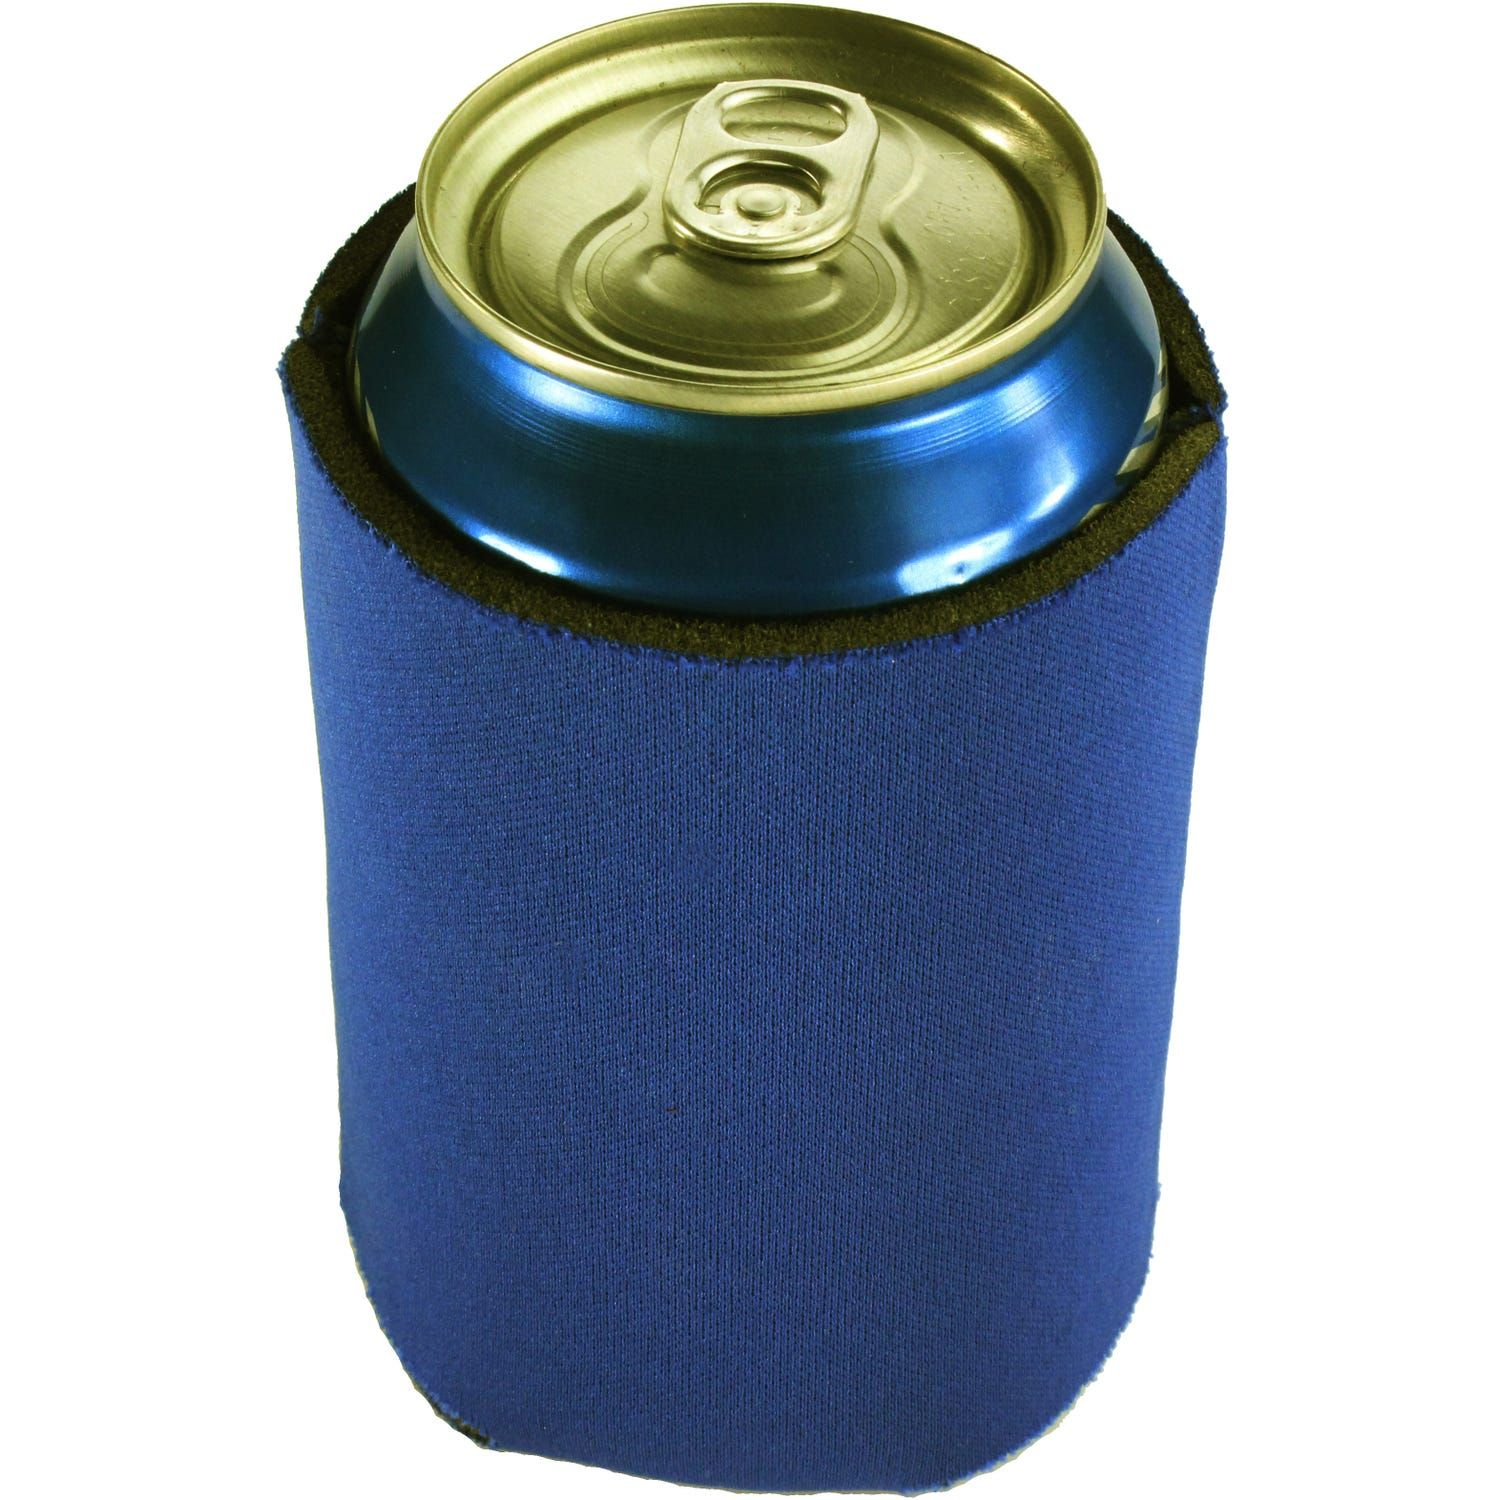 Budget Collapsible Foam Can Holder Can Holders Quality Logo Products Budgeting